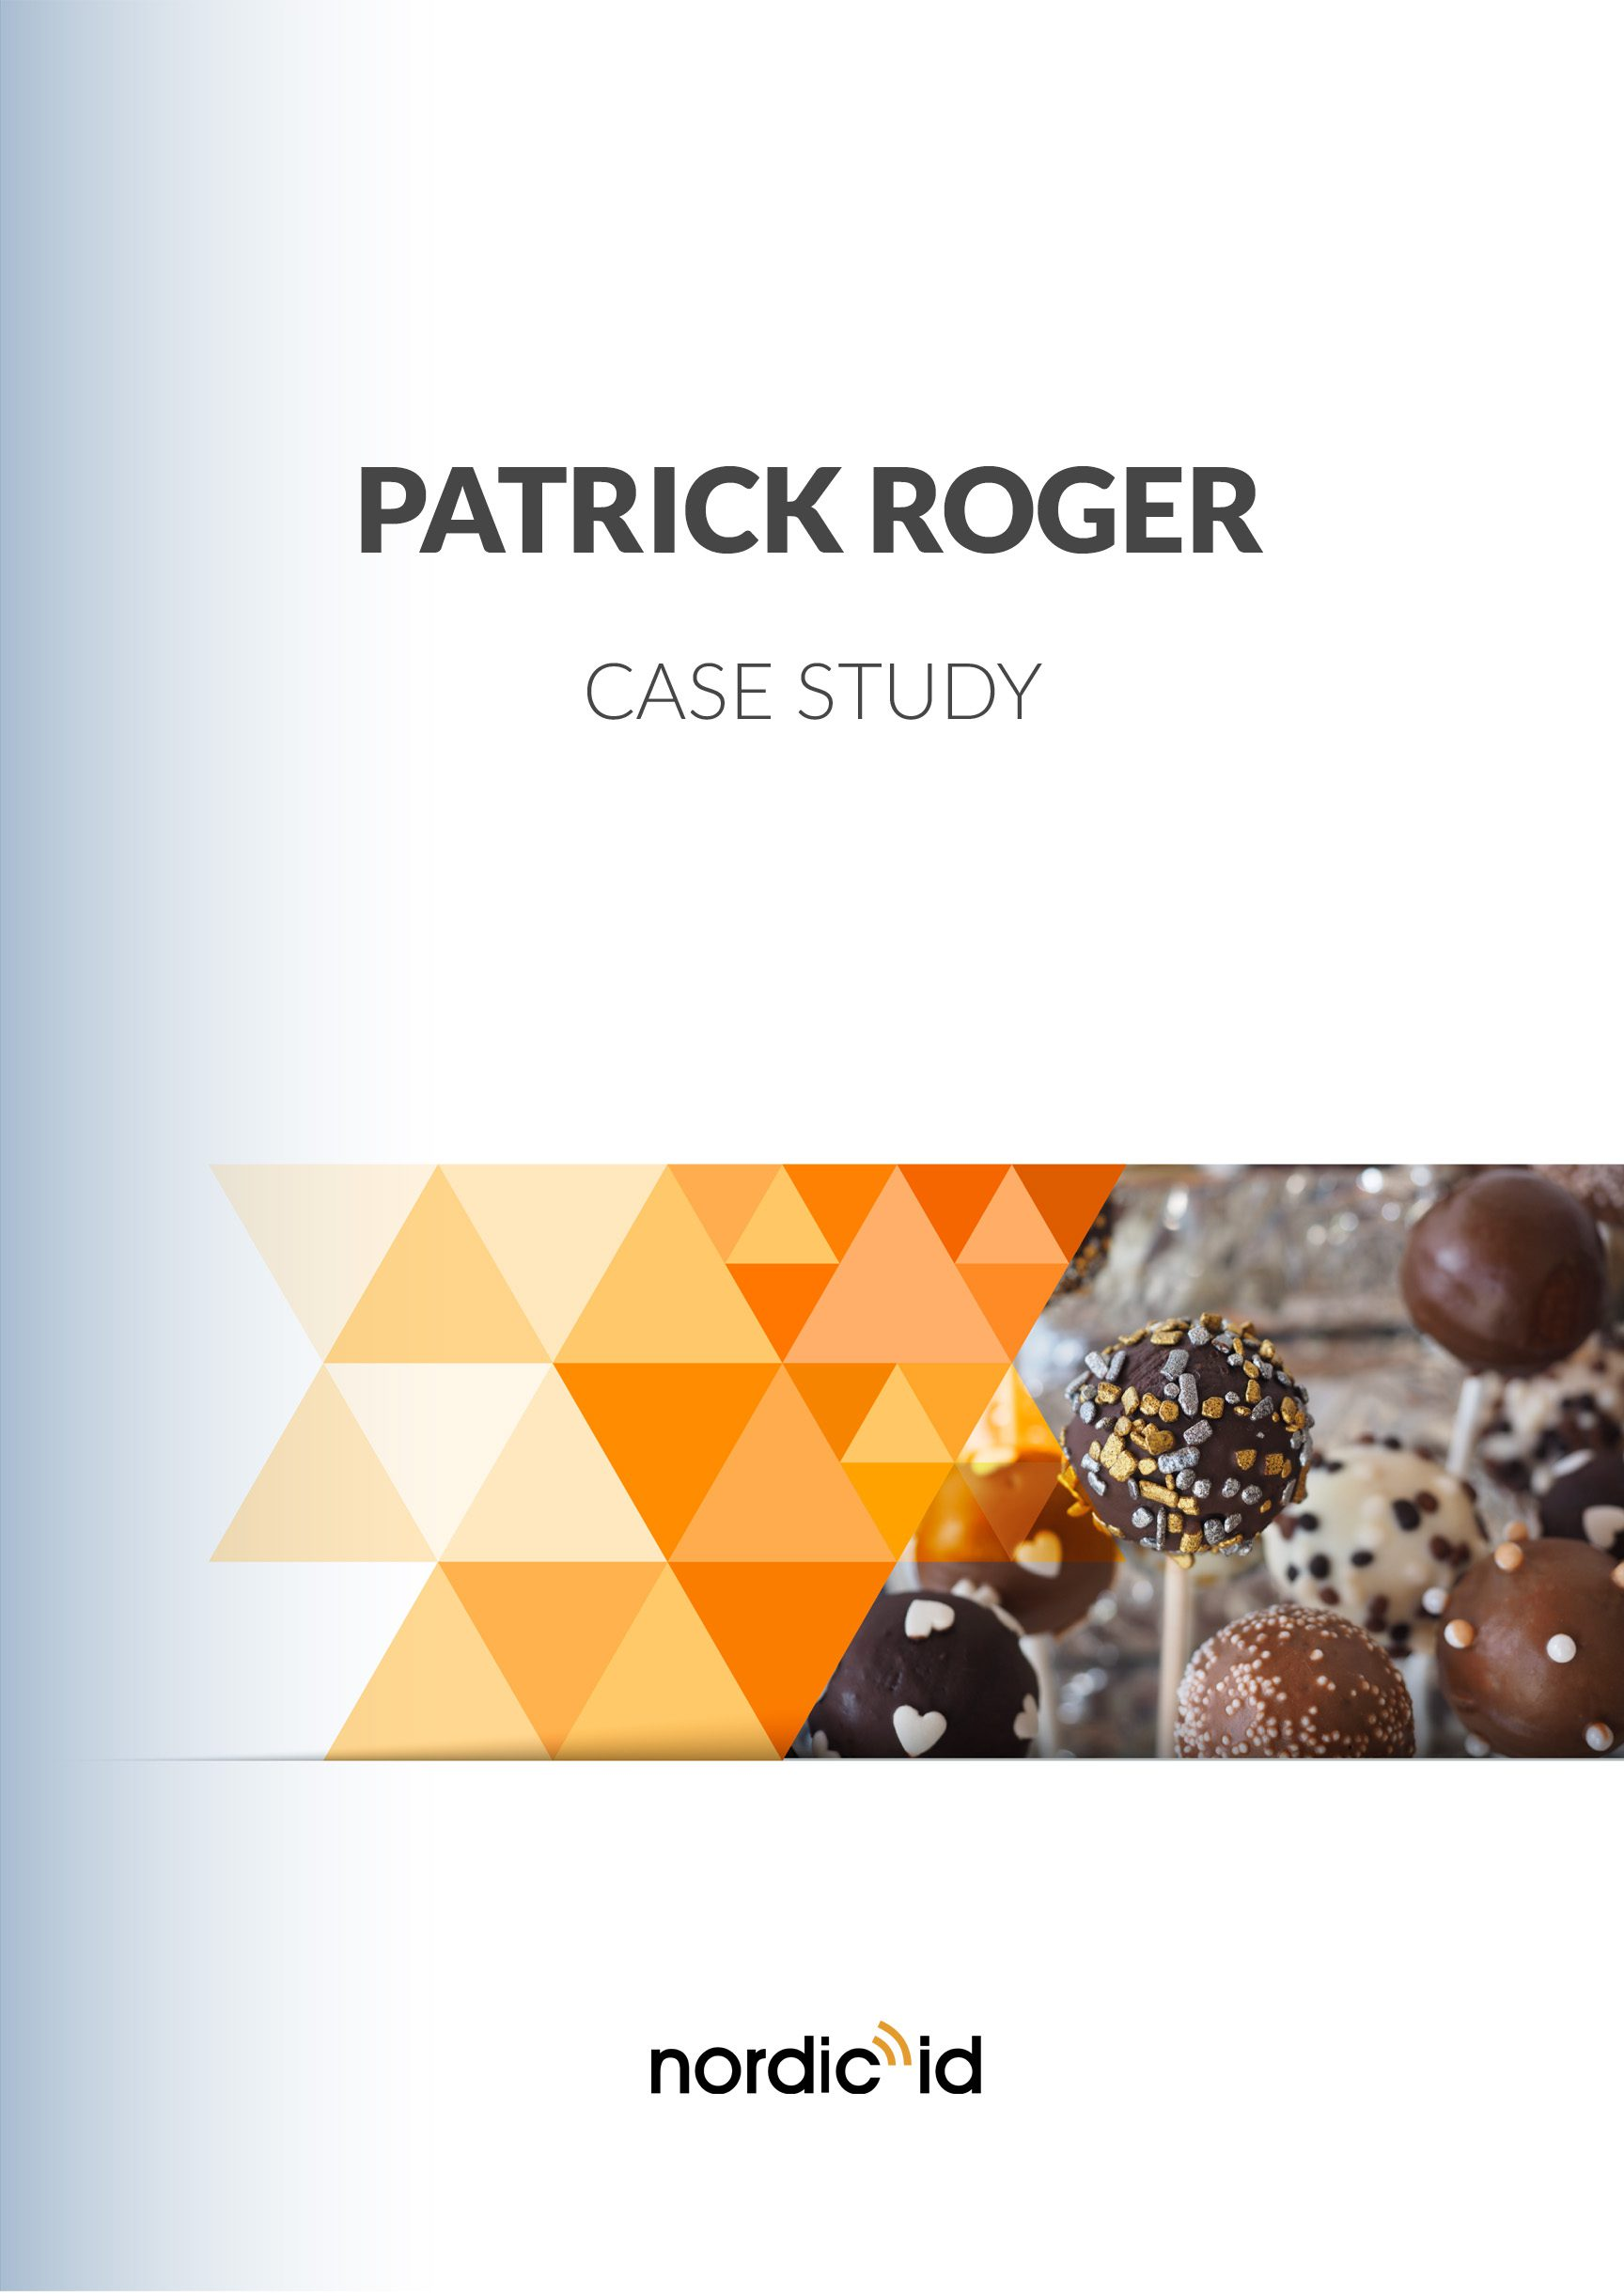 Learn how Patrick Roger optimized their businesses with the help of RFID